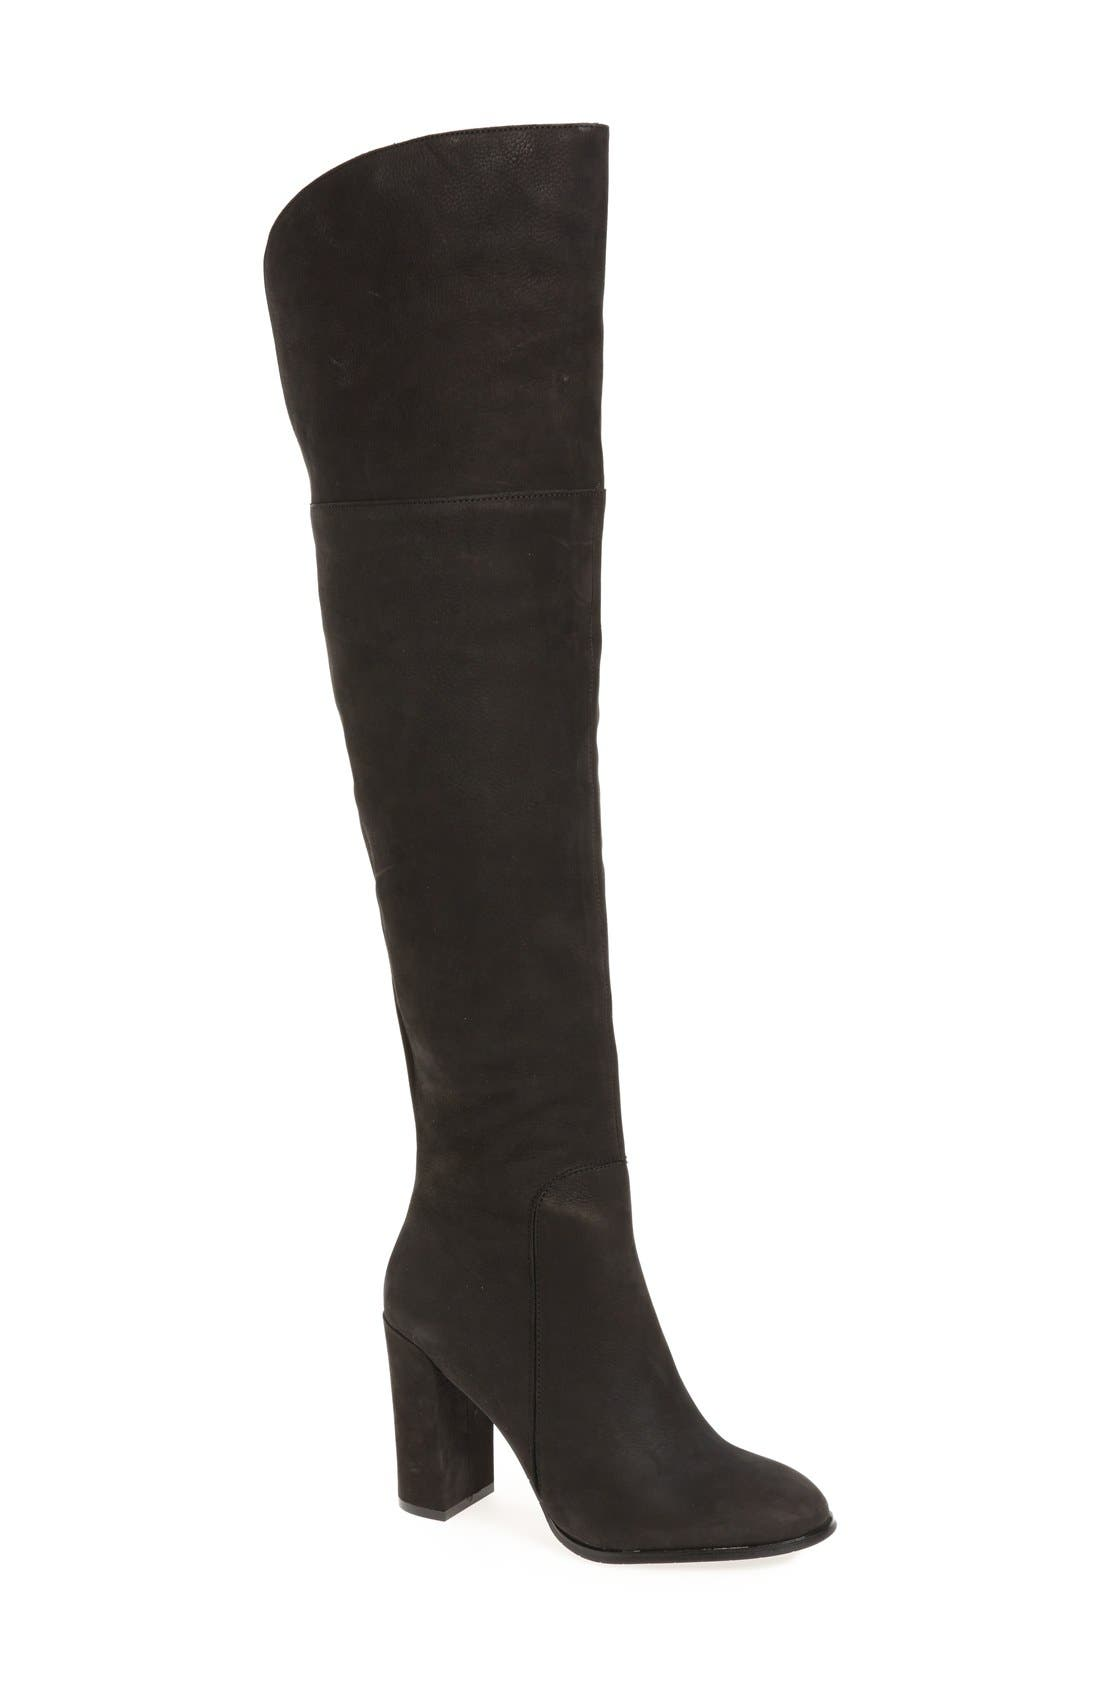 Over the Knee Jack Boot,                             Main thumbnail 1, color,                             Black Nubuck Leather